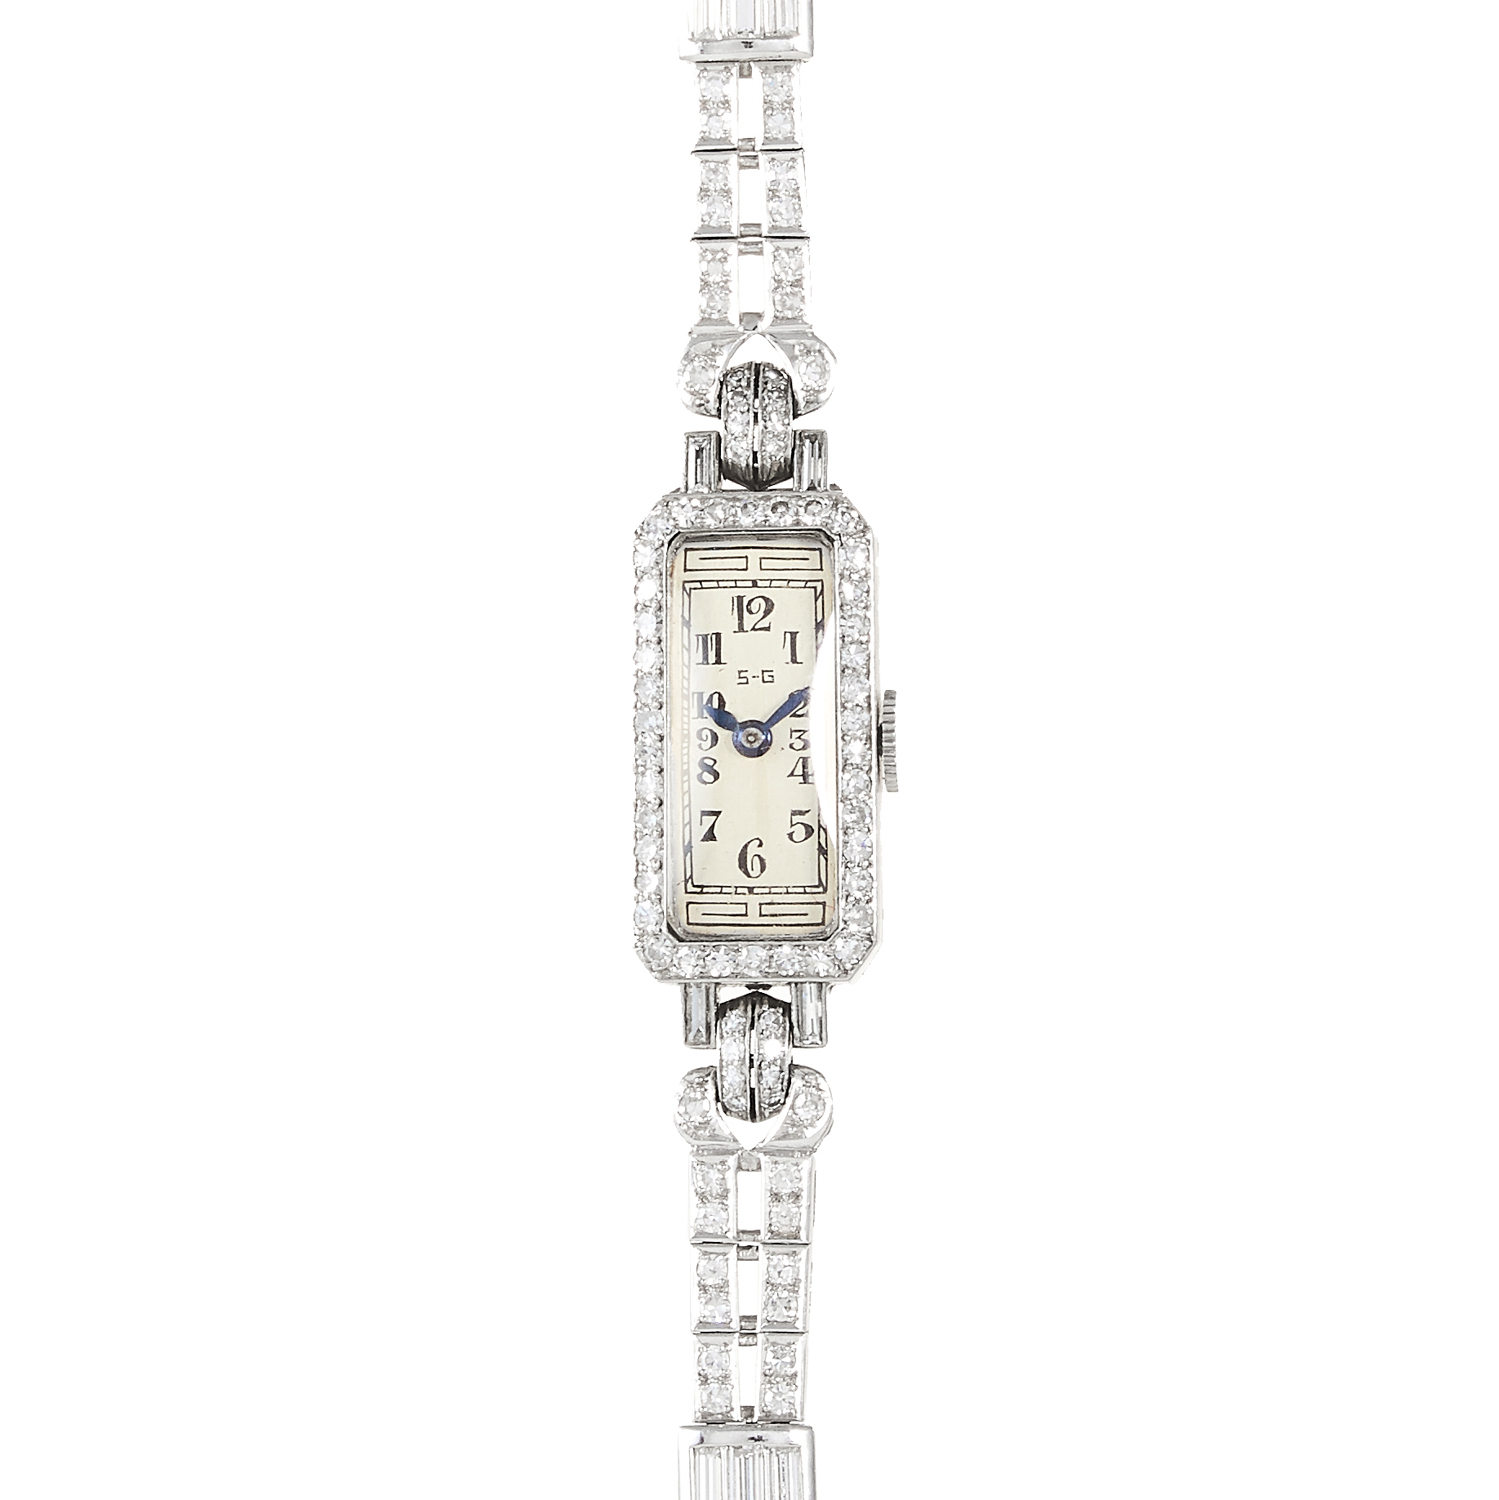 AN ART DECO DIAMOND COCKTAIL WATCH, PATEK PHILIPPE MOVEMENT in white gold or platinum, the strap - Image 2 of 2